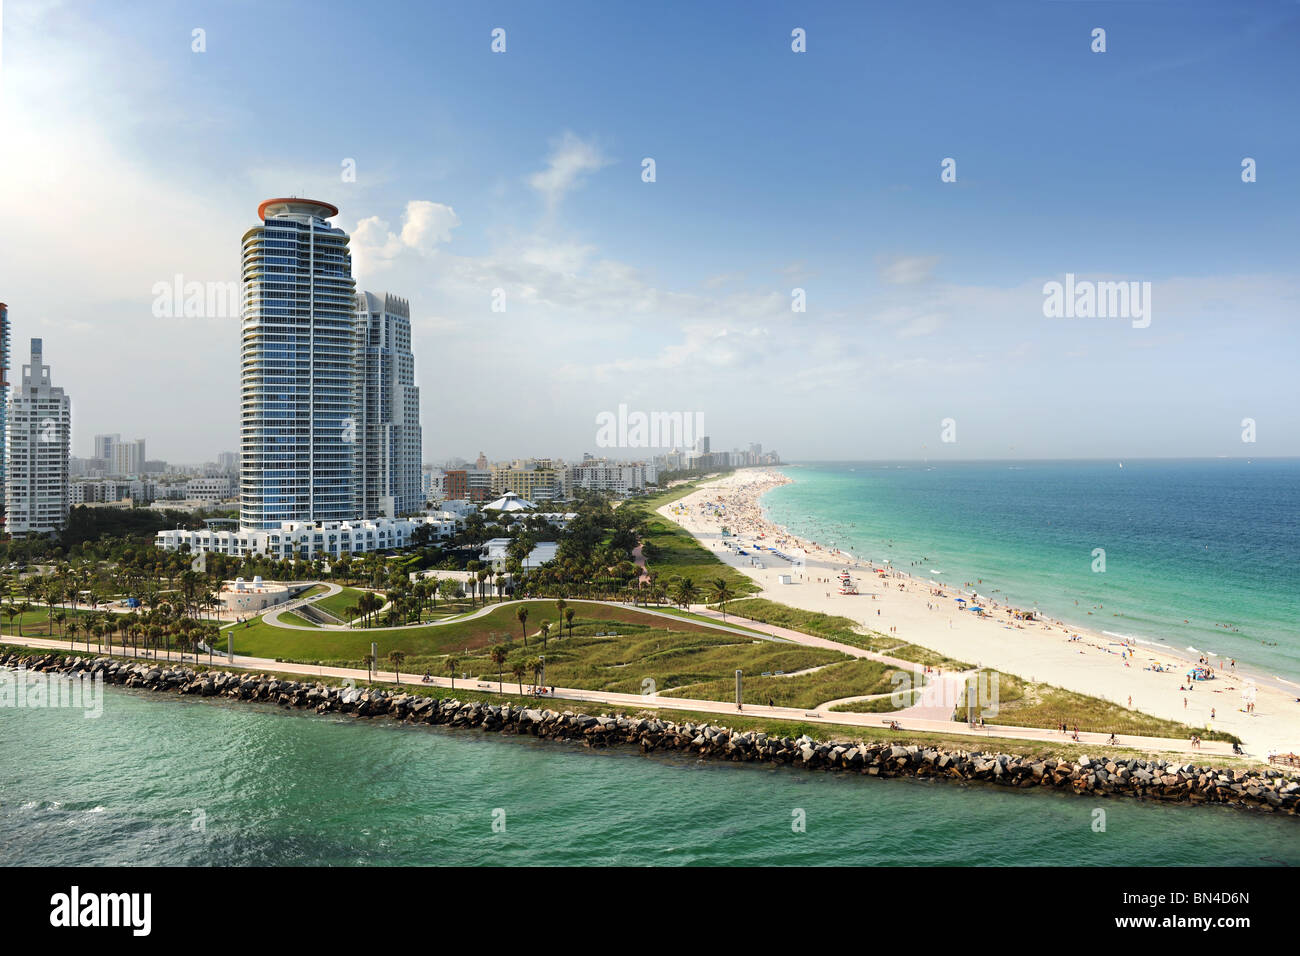 Miami Beach in Florida with luxury apartments and waterway - Stock Image